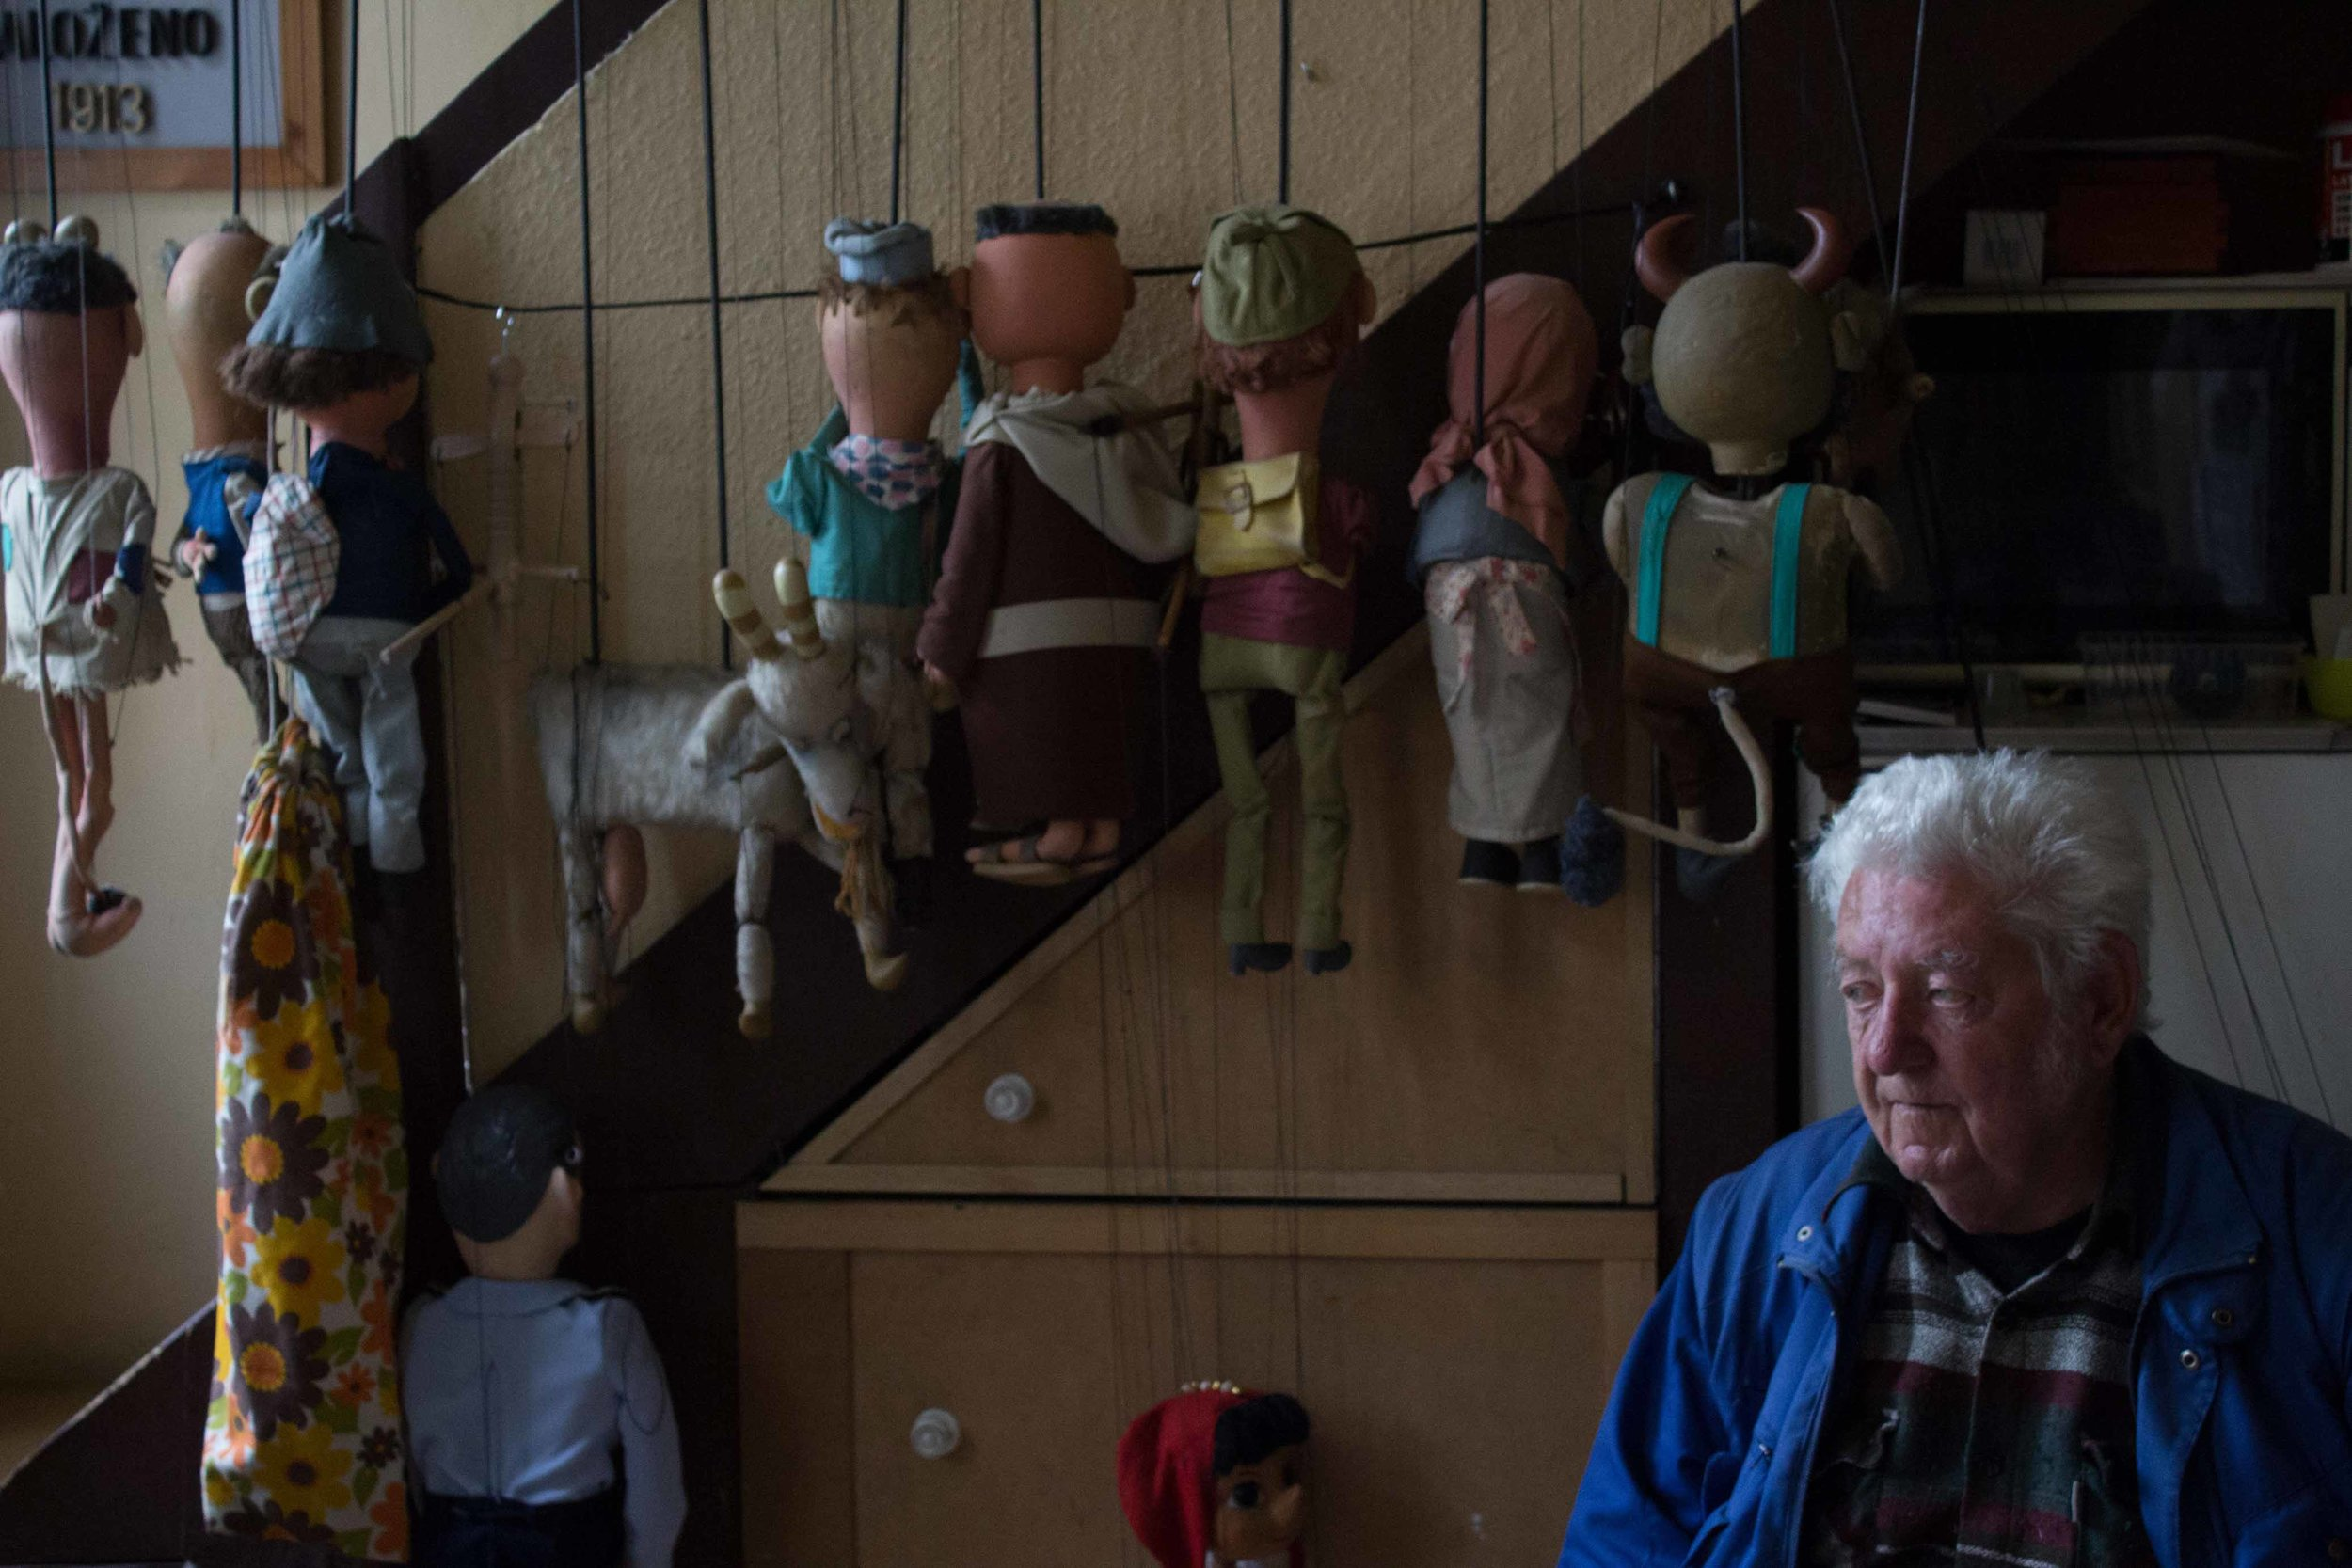 Loutkové Divadlo Jiskra is the oldest amateur puppet theater in Prague. Miloš Krása, a member of the company, waits backstage before the beginning of the weekly children's show.